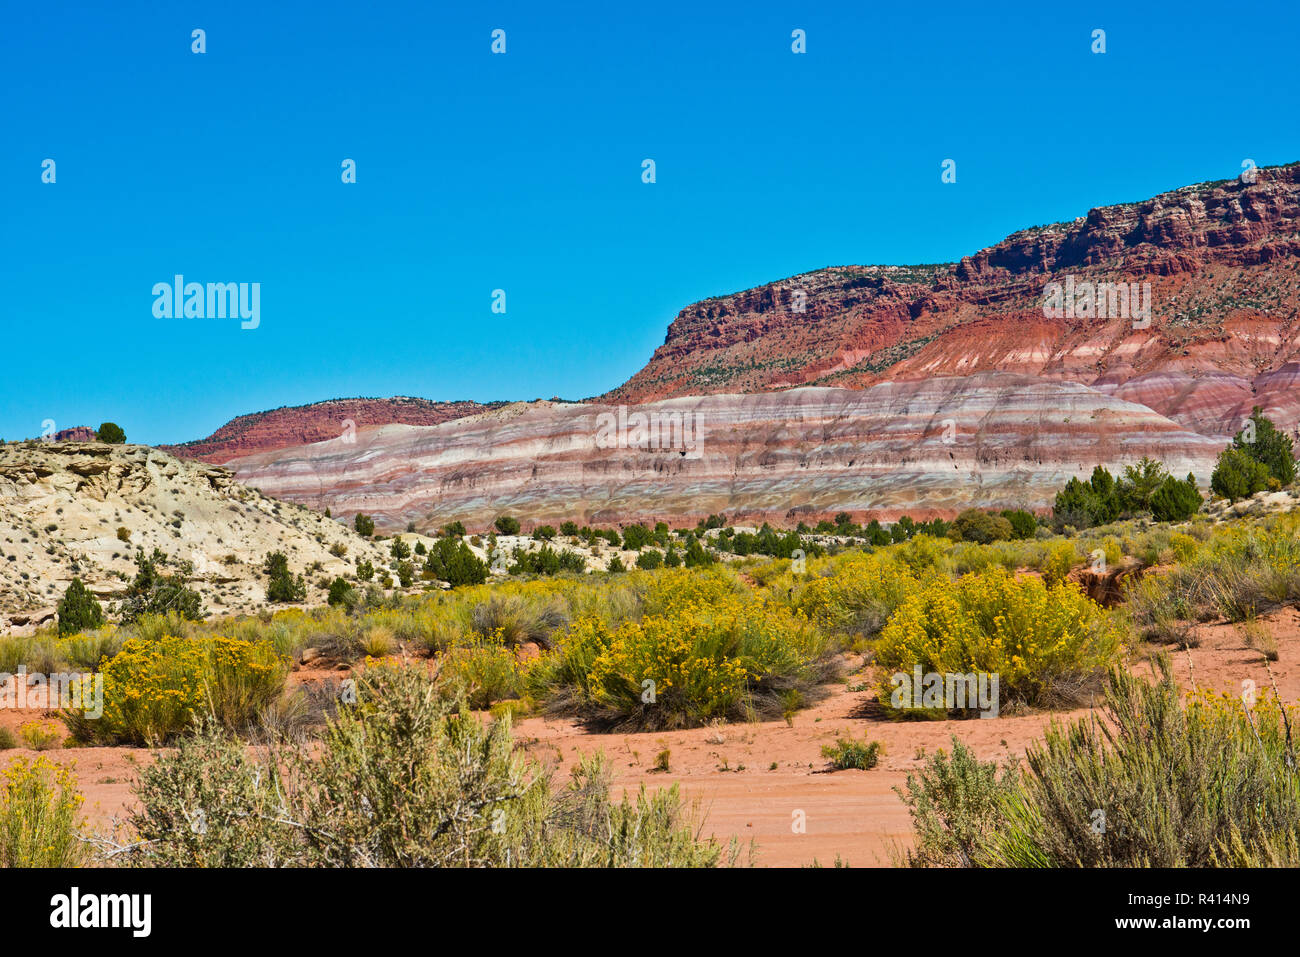 USA, Utah. Paria views along trail to Ghost Town - Stock Image